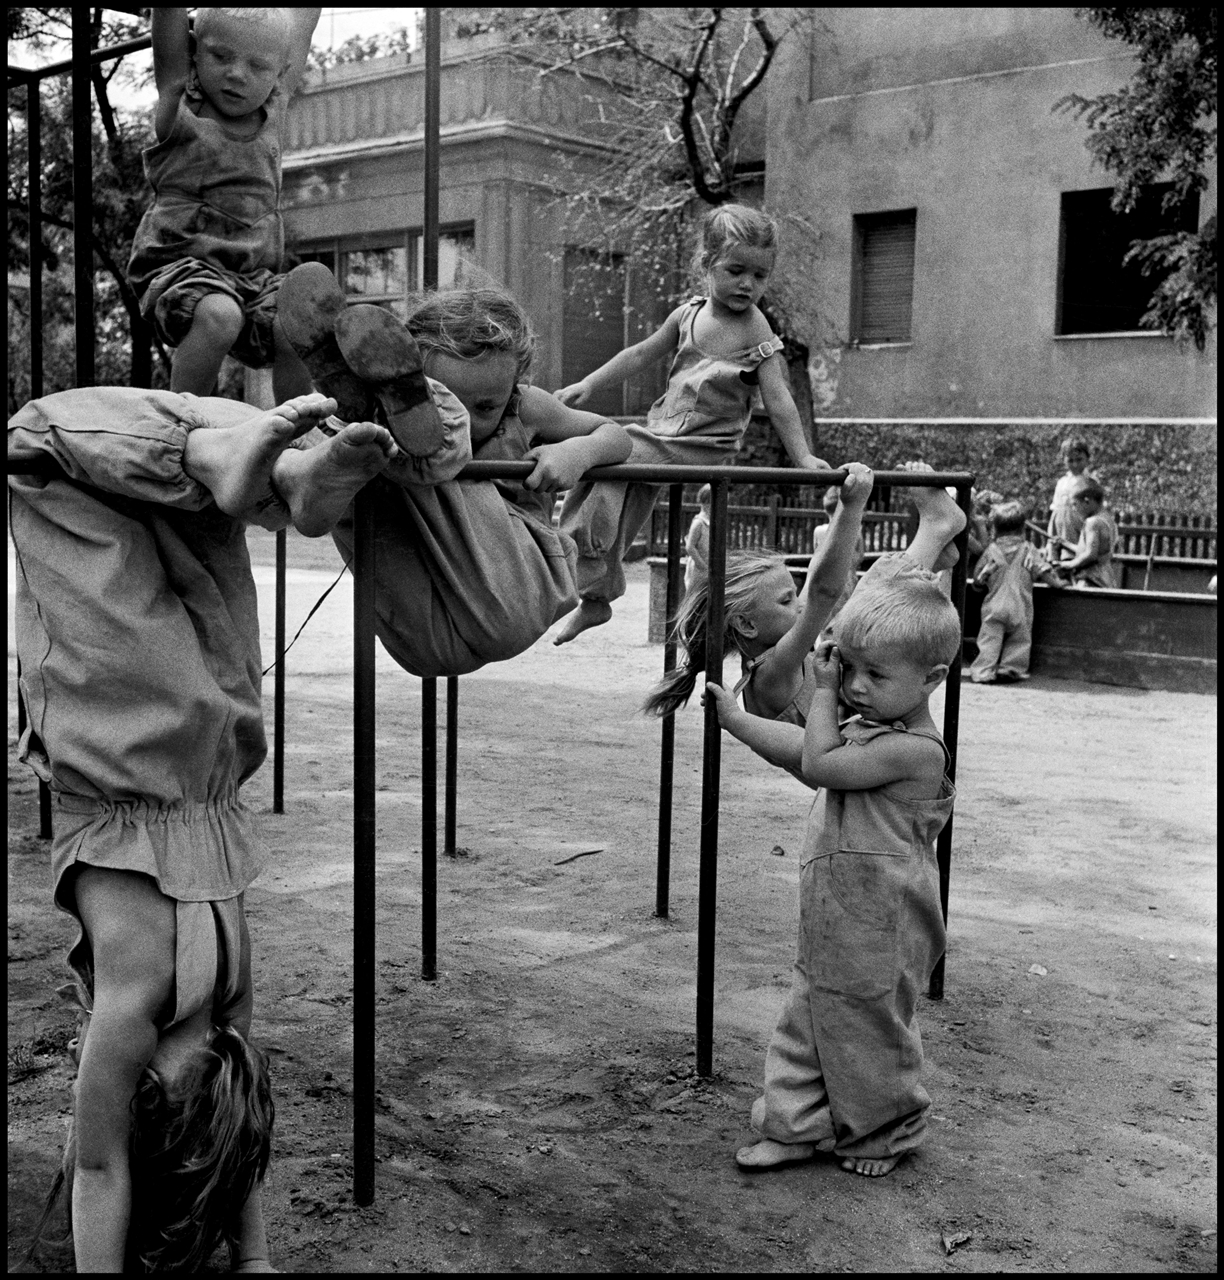 David SEYMOUR 'CHIM' | Active children of textile workers clamber over special climbing bar sin the grounds of the house of the former factory owner, now the kindergarten near Budapest, Hungary | 1948